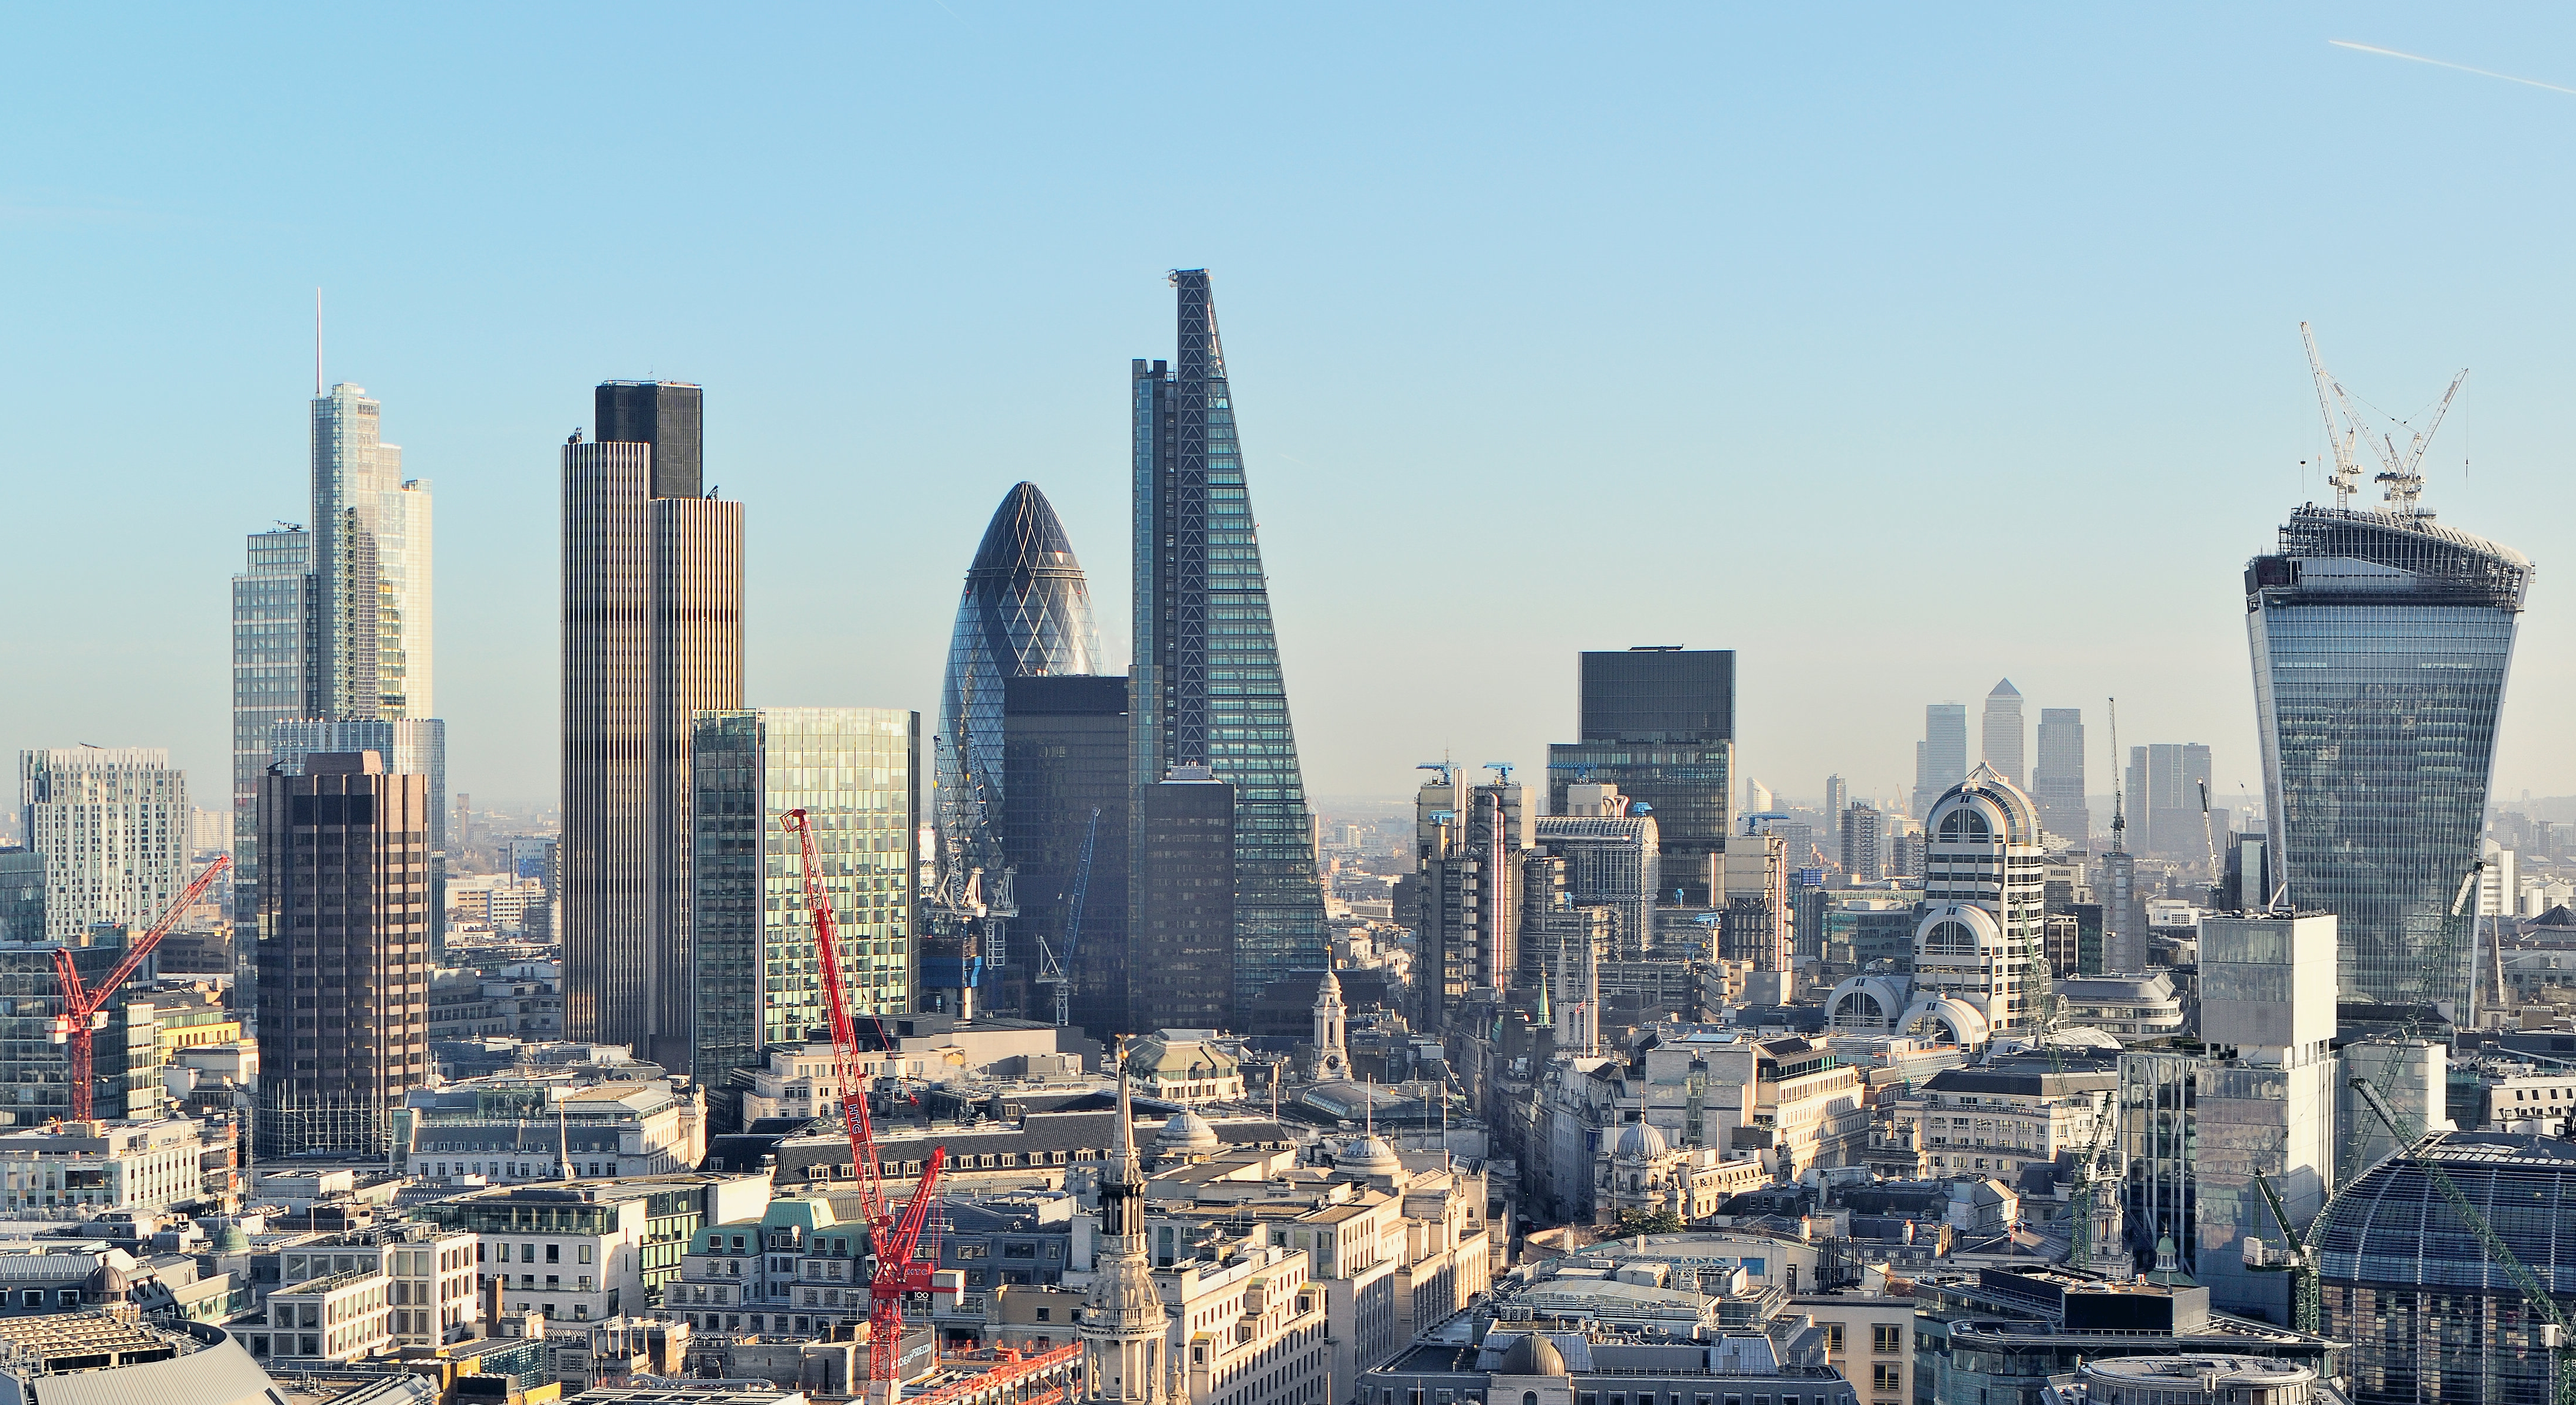 top economists working in London's City financial district, small business and academia